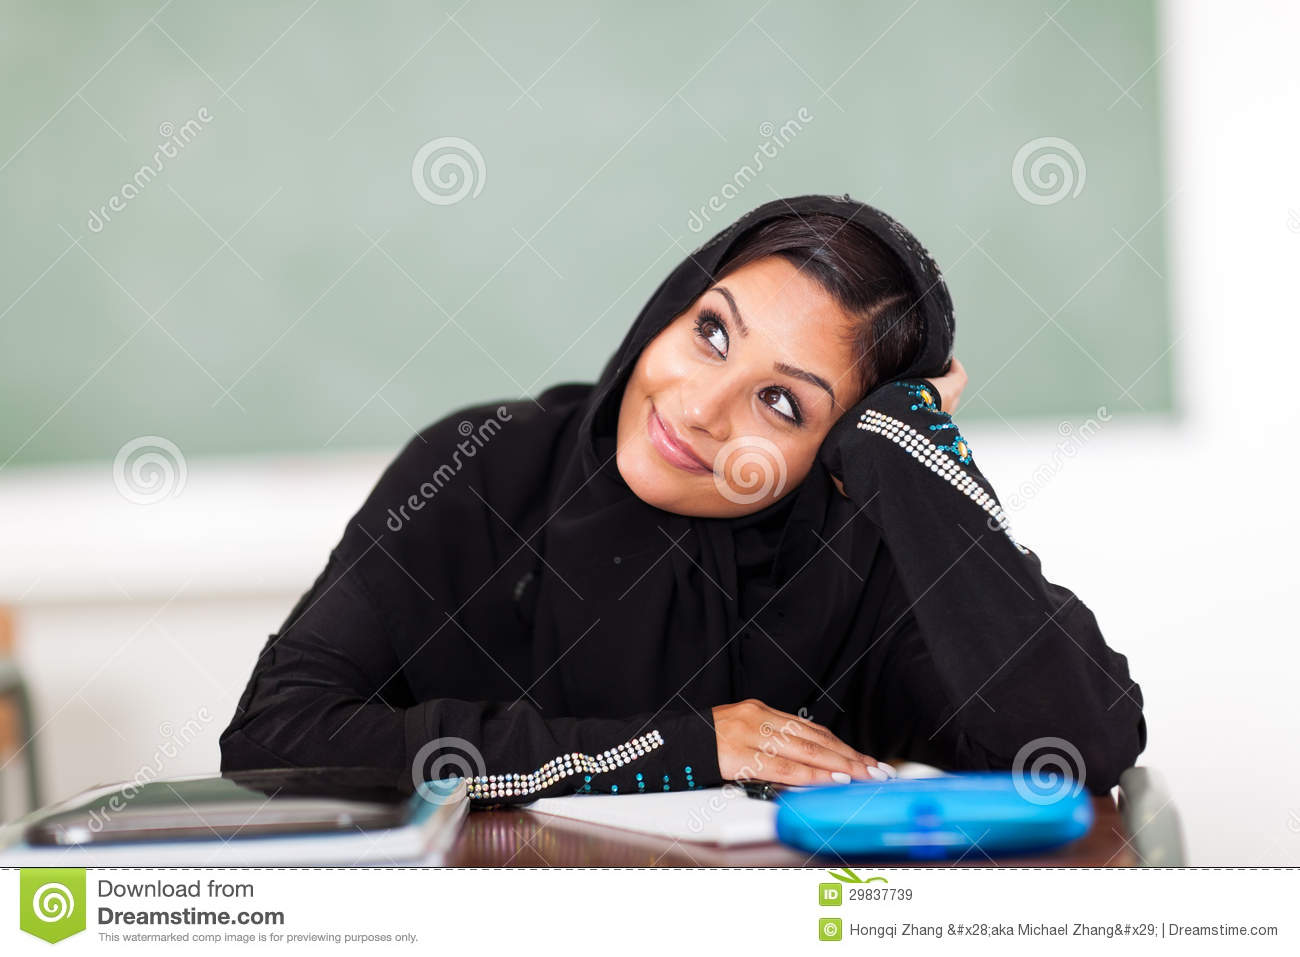 Arabian Student Daydreaming Royalty Free Stock Images ...